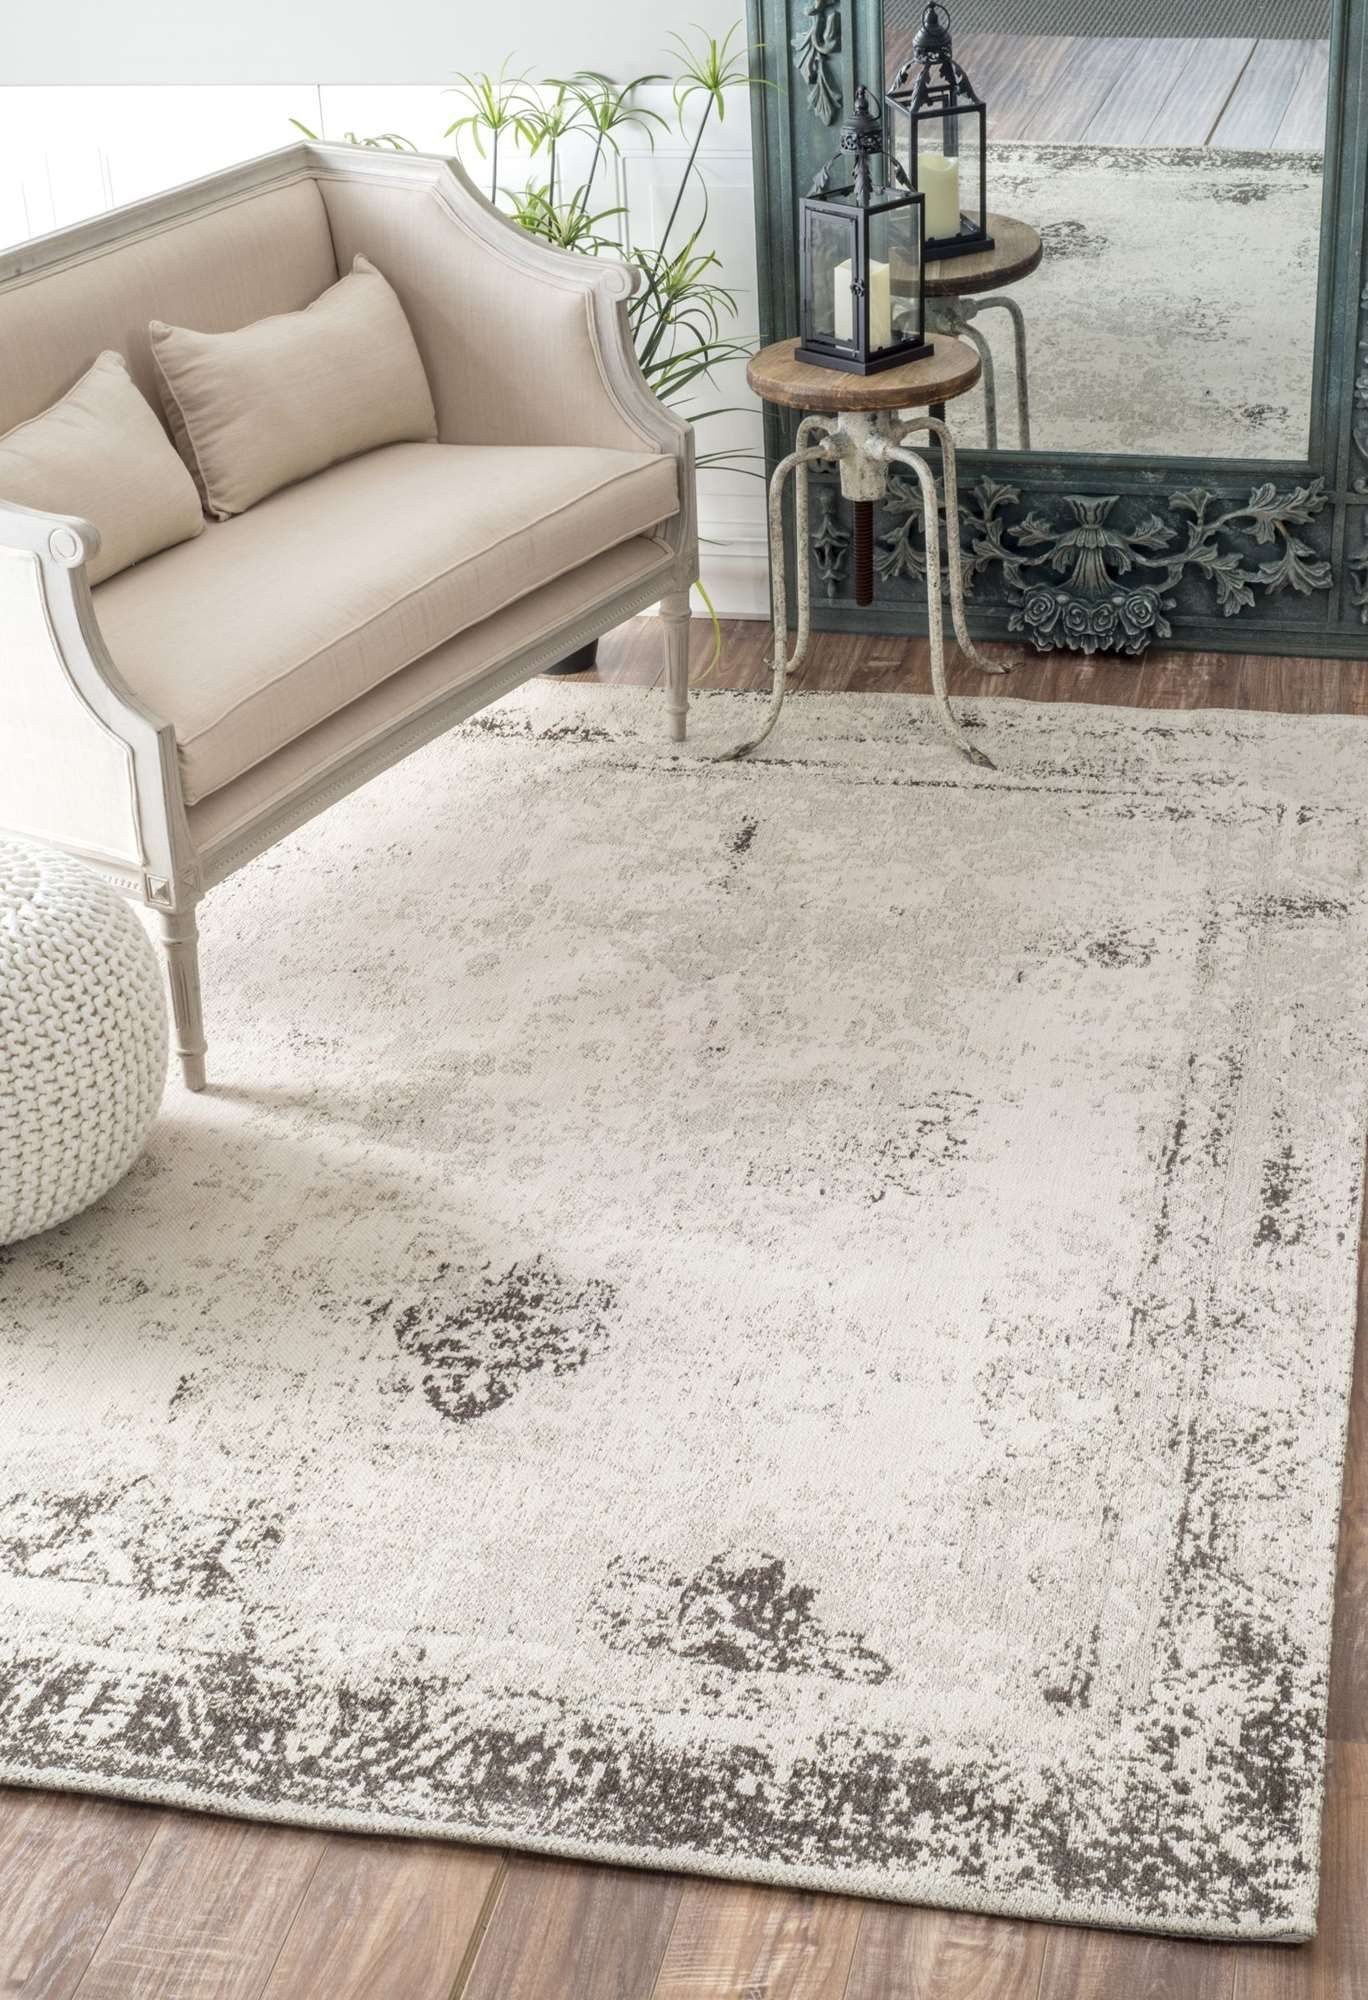 MaesterFaded Abstract Rug MaesterFaded Abstract Rug